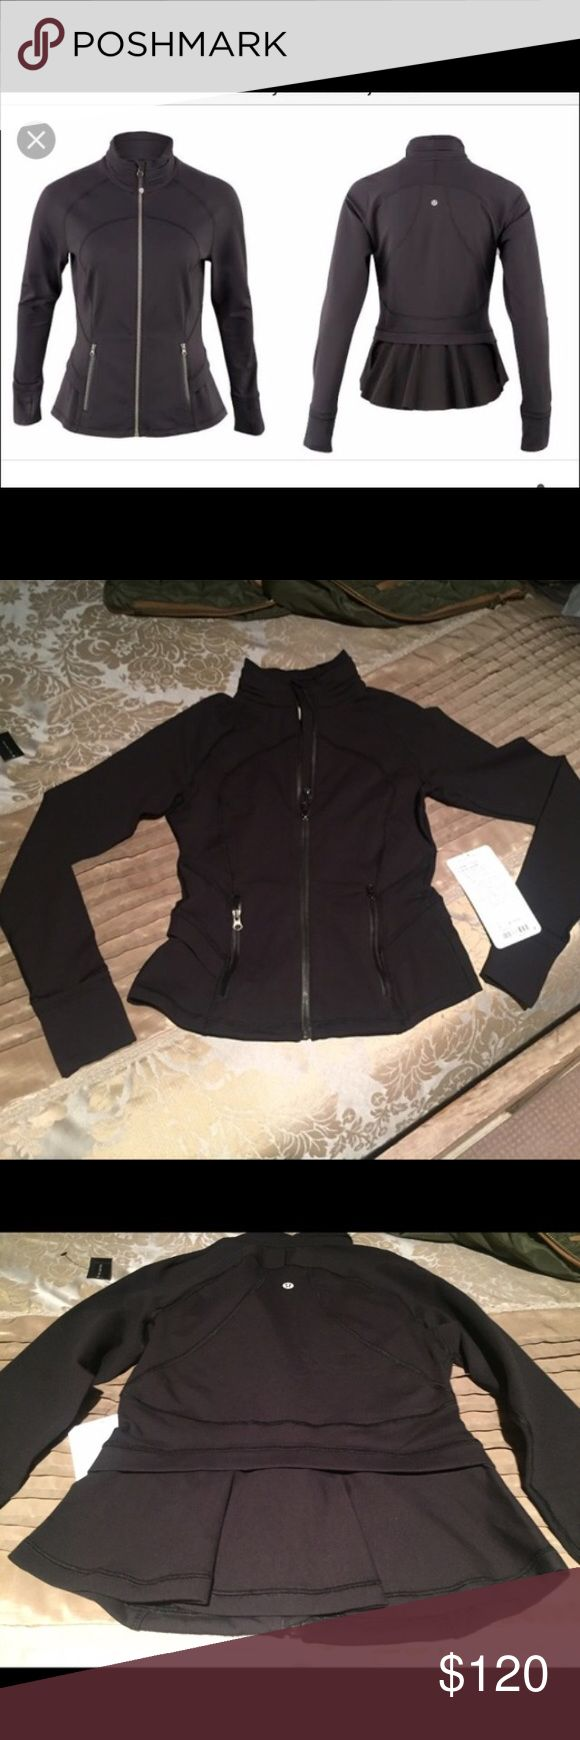 Black Hustle in Your Bustle, 4 Black EUC Perfect black size 4 Hustle in Your Bustle. Found on Posh, purchased (listed as NWOT) for a sporting event and decided to wear a Define instead. Rip tag removed but otherwise looks new. Size dot in pocket. Already taking a loss, price firm. Will trade for size 4 Define jacket in EU/barely worn condition...heathered, fushia teeny tooth, cyber jungle, wee stripe picque, etc. Or Dance Studio Jacket in Bruised Berry, Tender Violet, Magenta color, maybe…